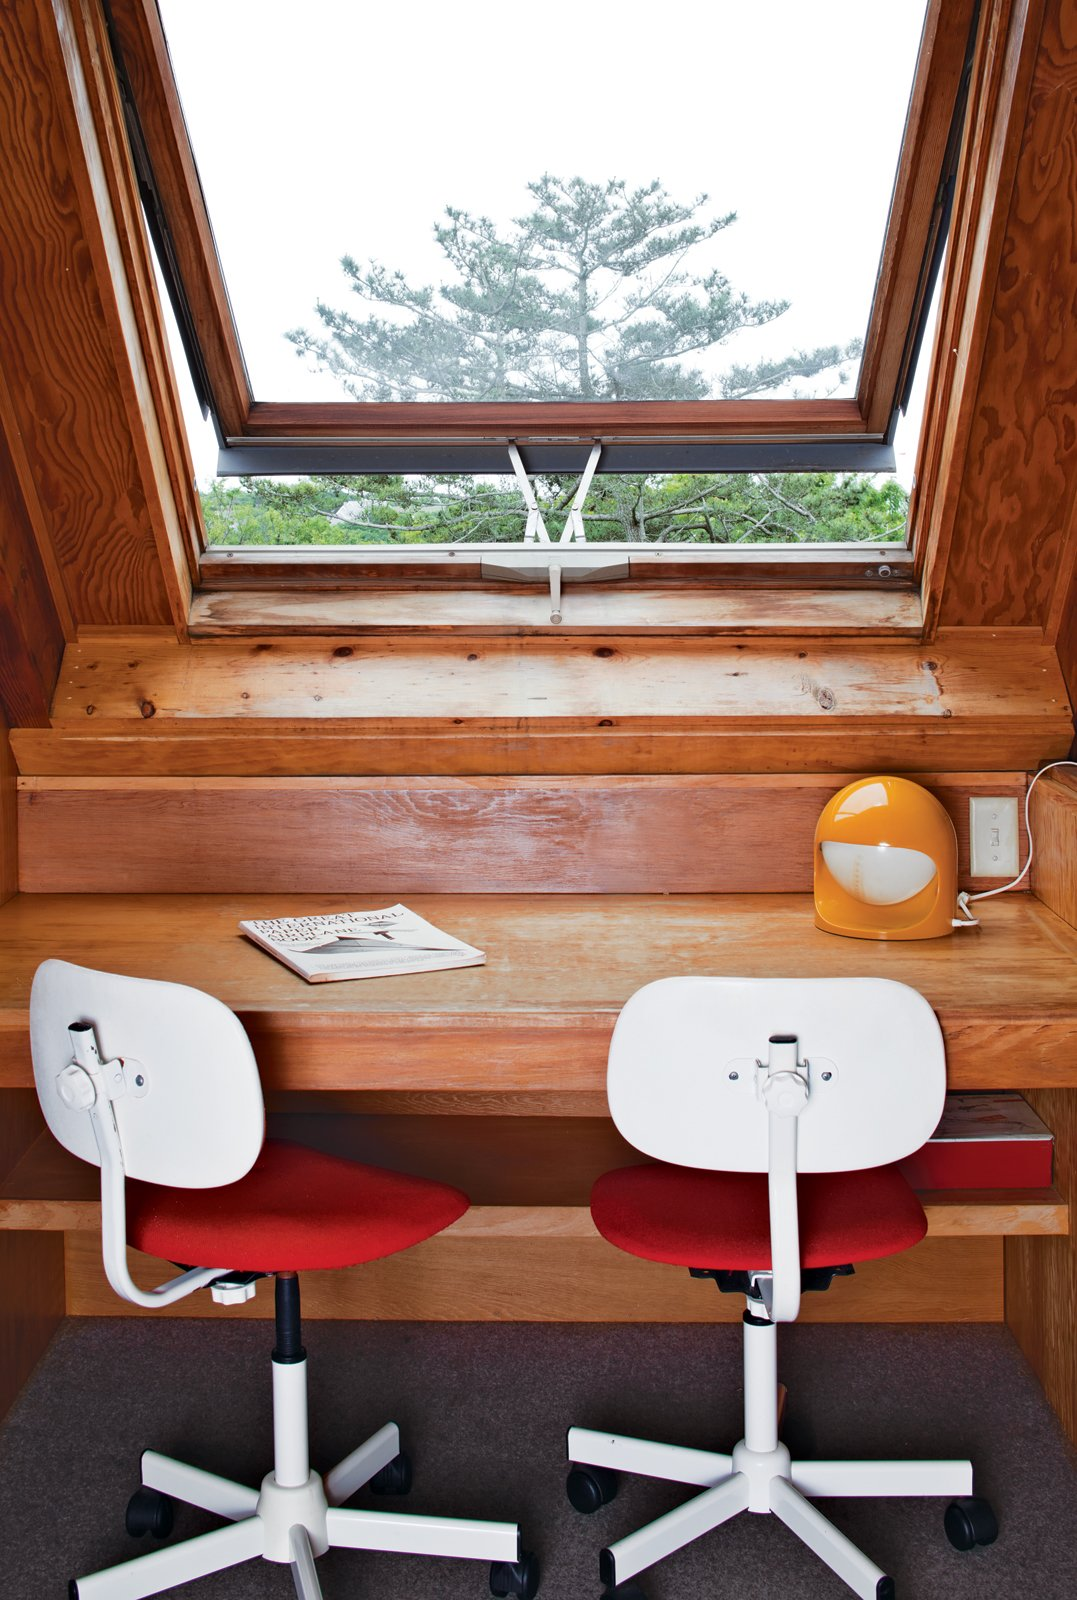 There is a small workstation on the upper level of the house.